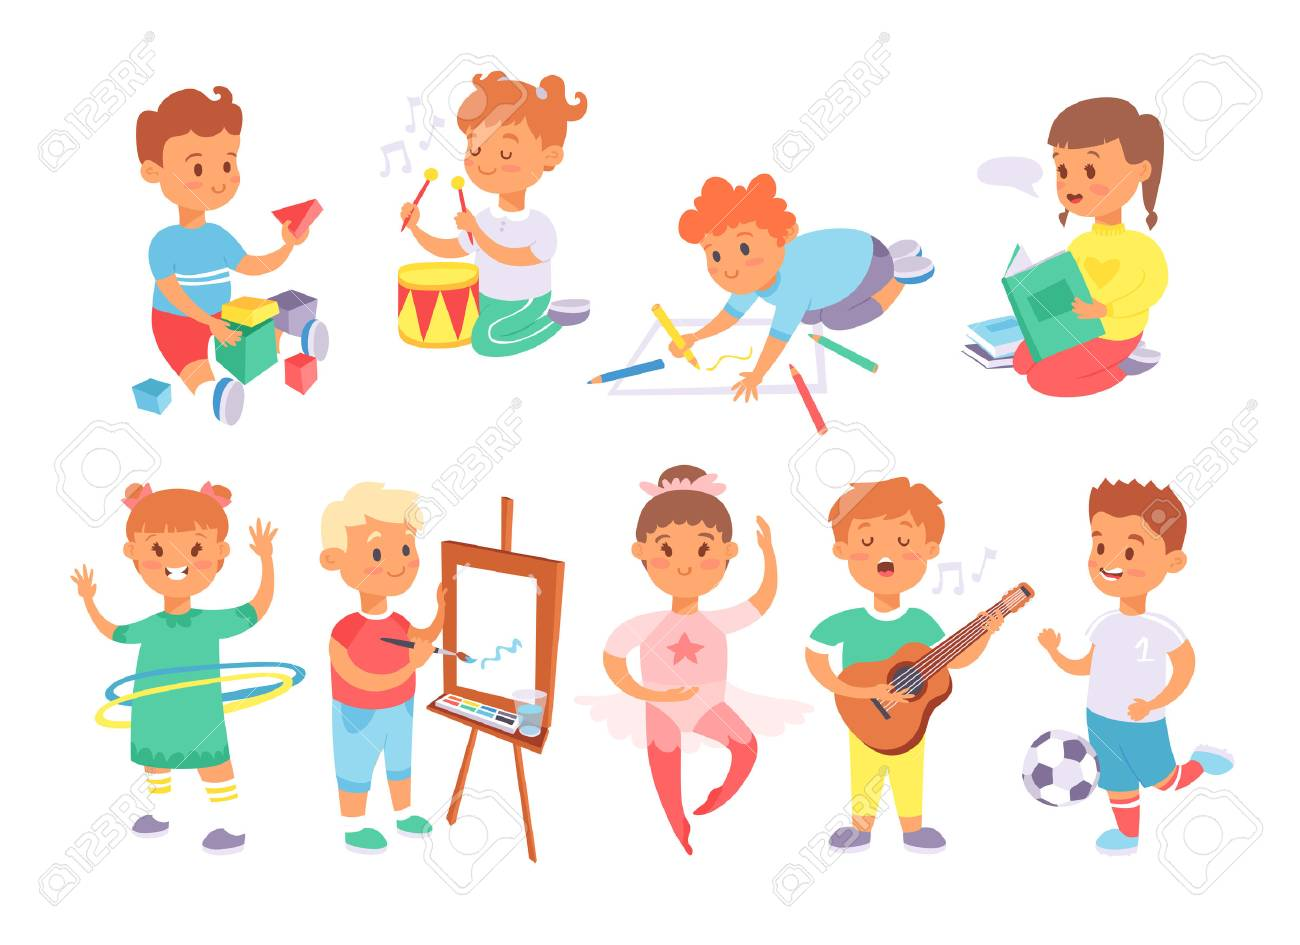 Active games clipart png black and white download Clipart Of Kids Playing With Little People Toys & Clip Art Images ... png black and white download